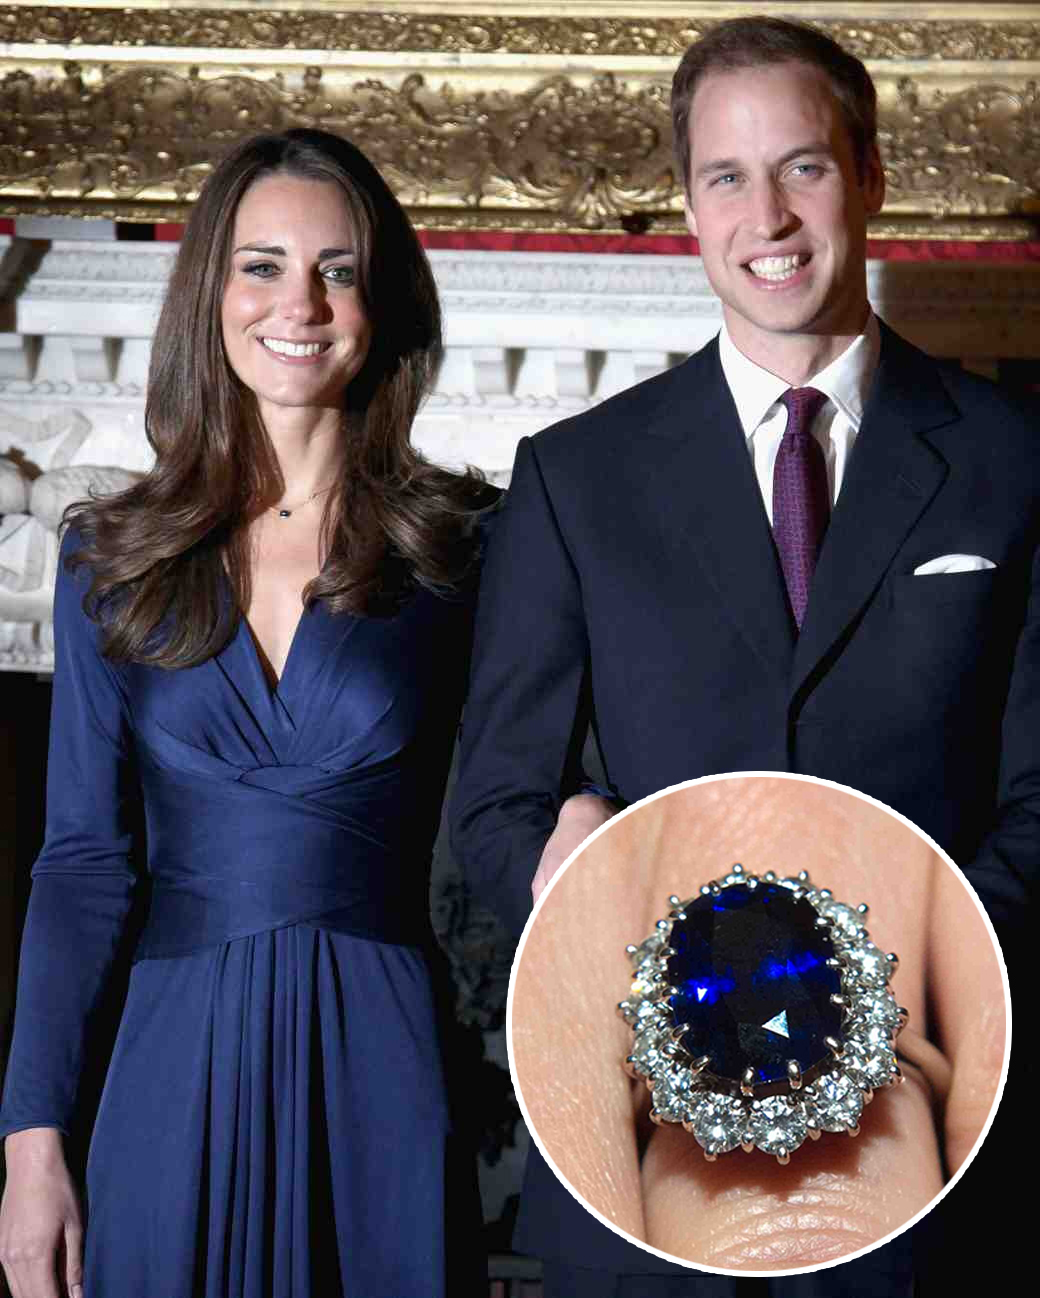 kate-middleton-ring-inset-0316.jpg